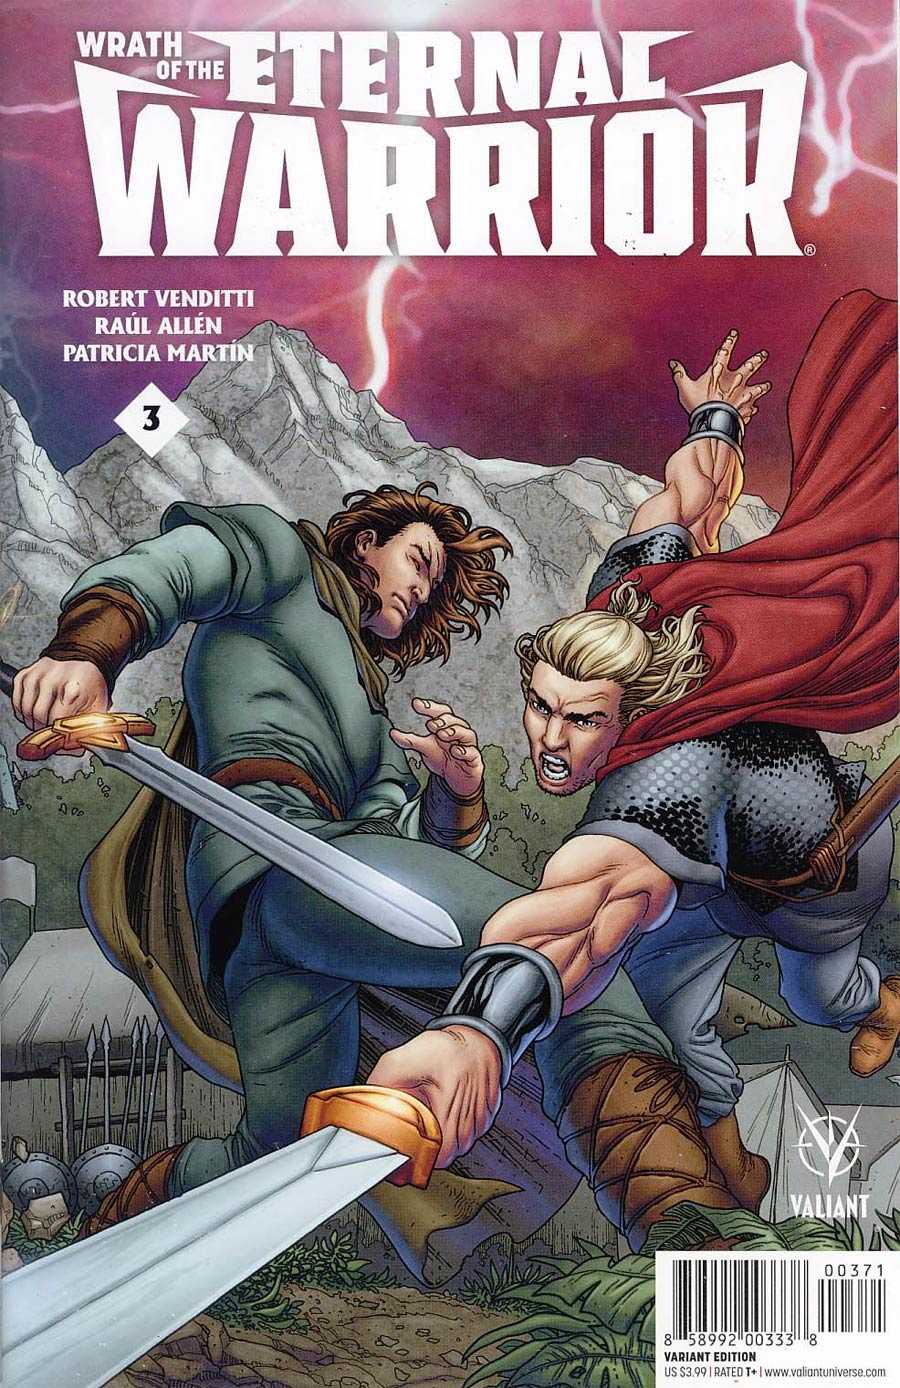 Wrath Of The Eternal Warrior #3 Cover G Midtown Comics Retailer Shared Exclusive Variant Cover